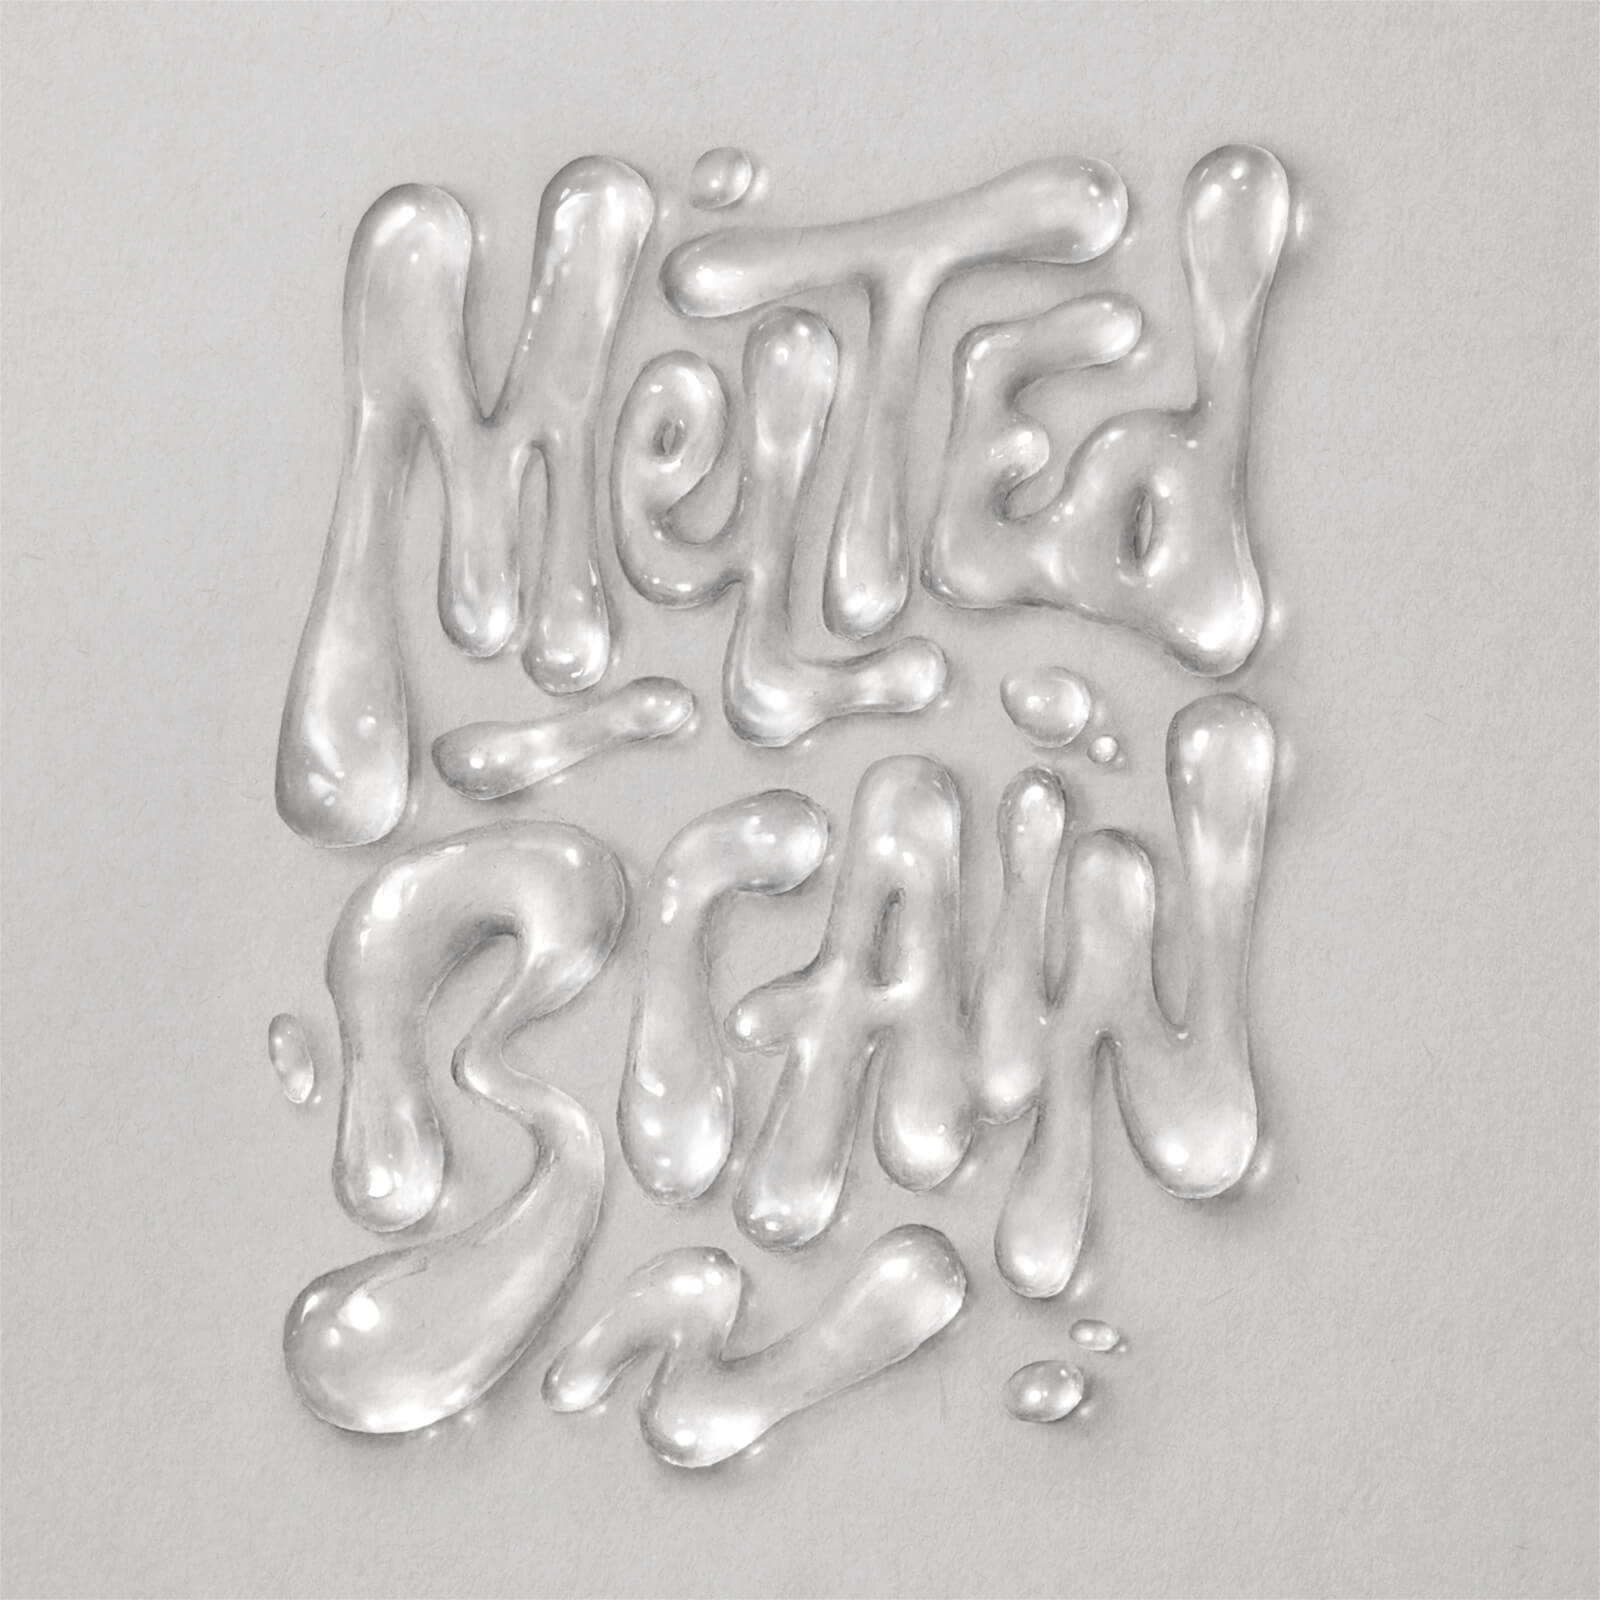 Brain Melt - Romain Grimm